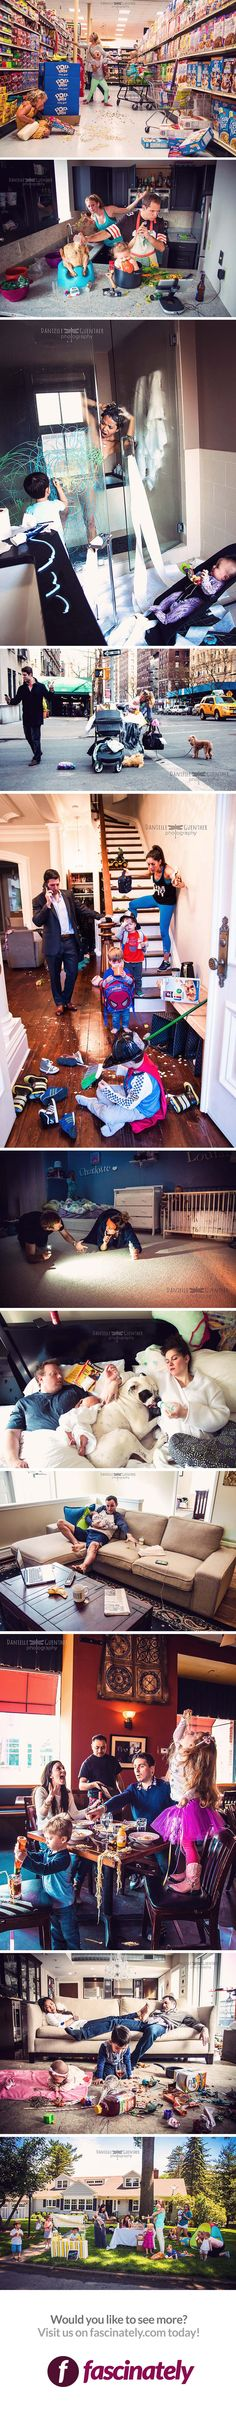 Photographer Reveals the True Chaos of What is Means to Be a Parent